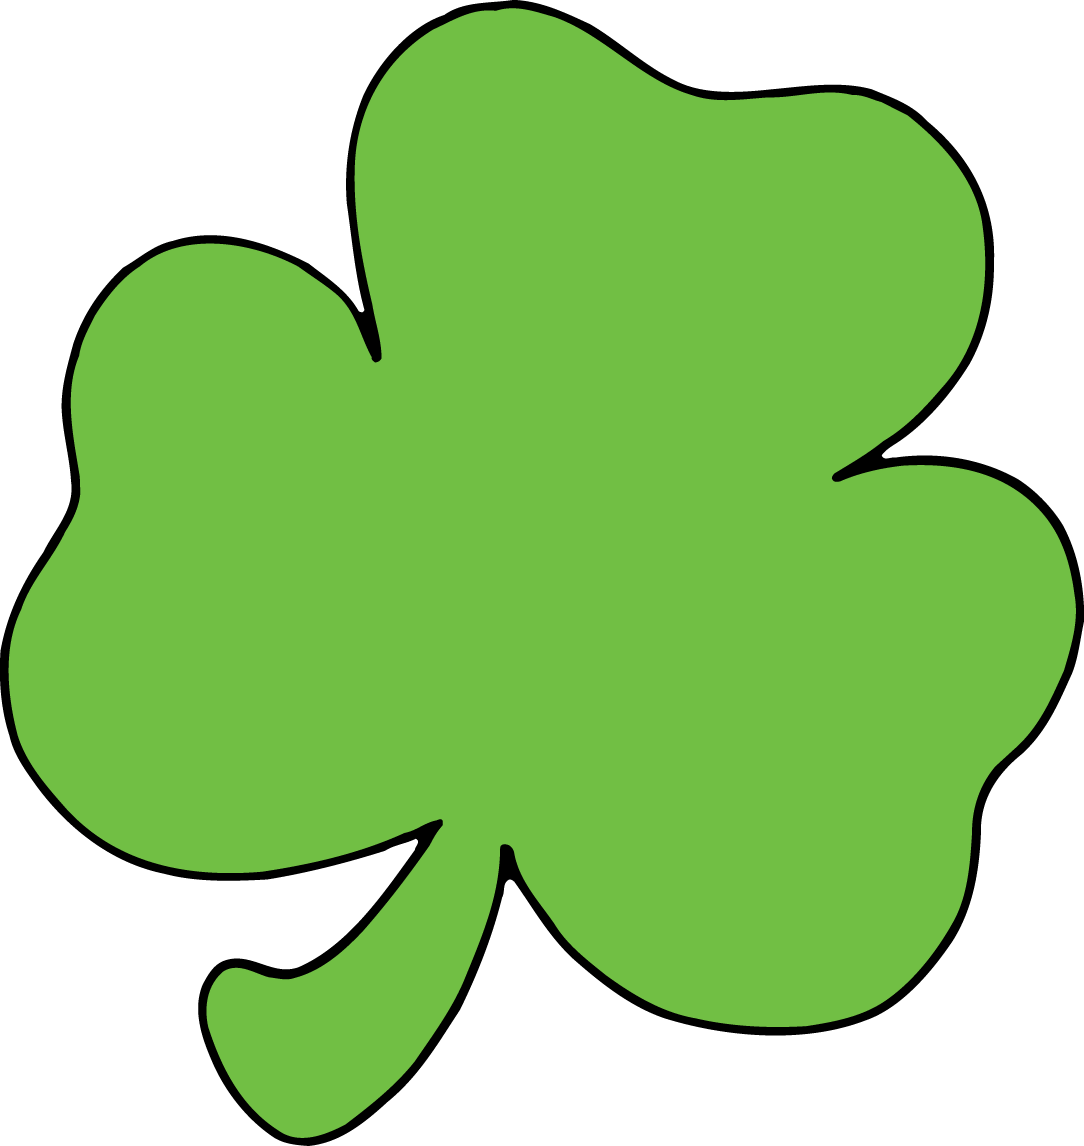 Shamrock clipart #3, Download drawings